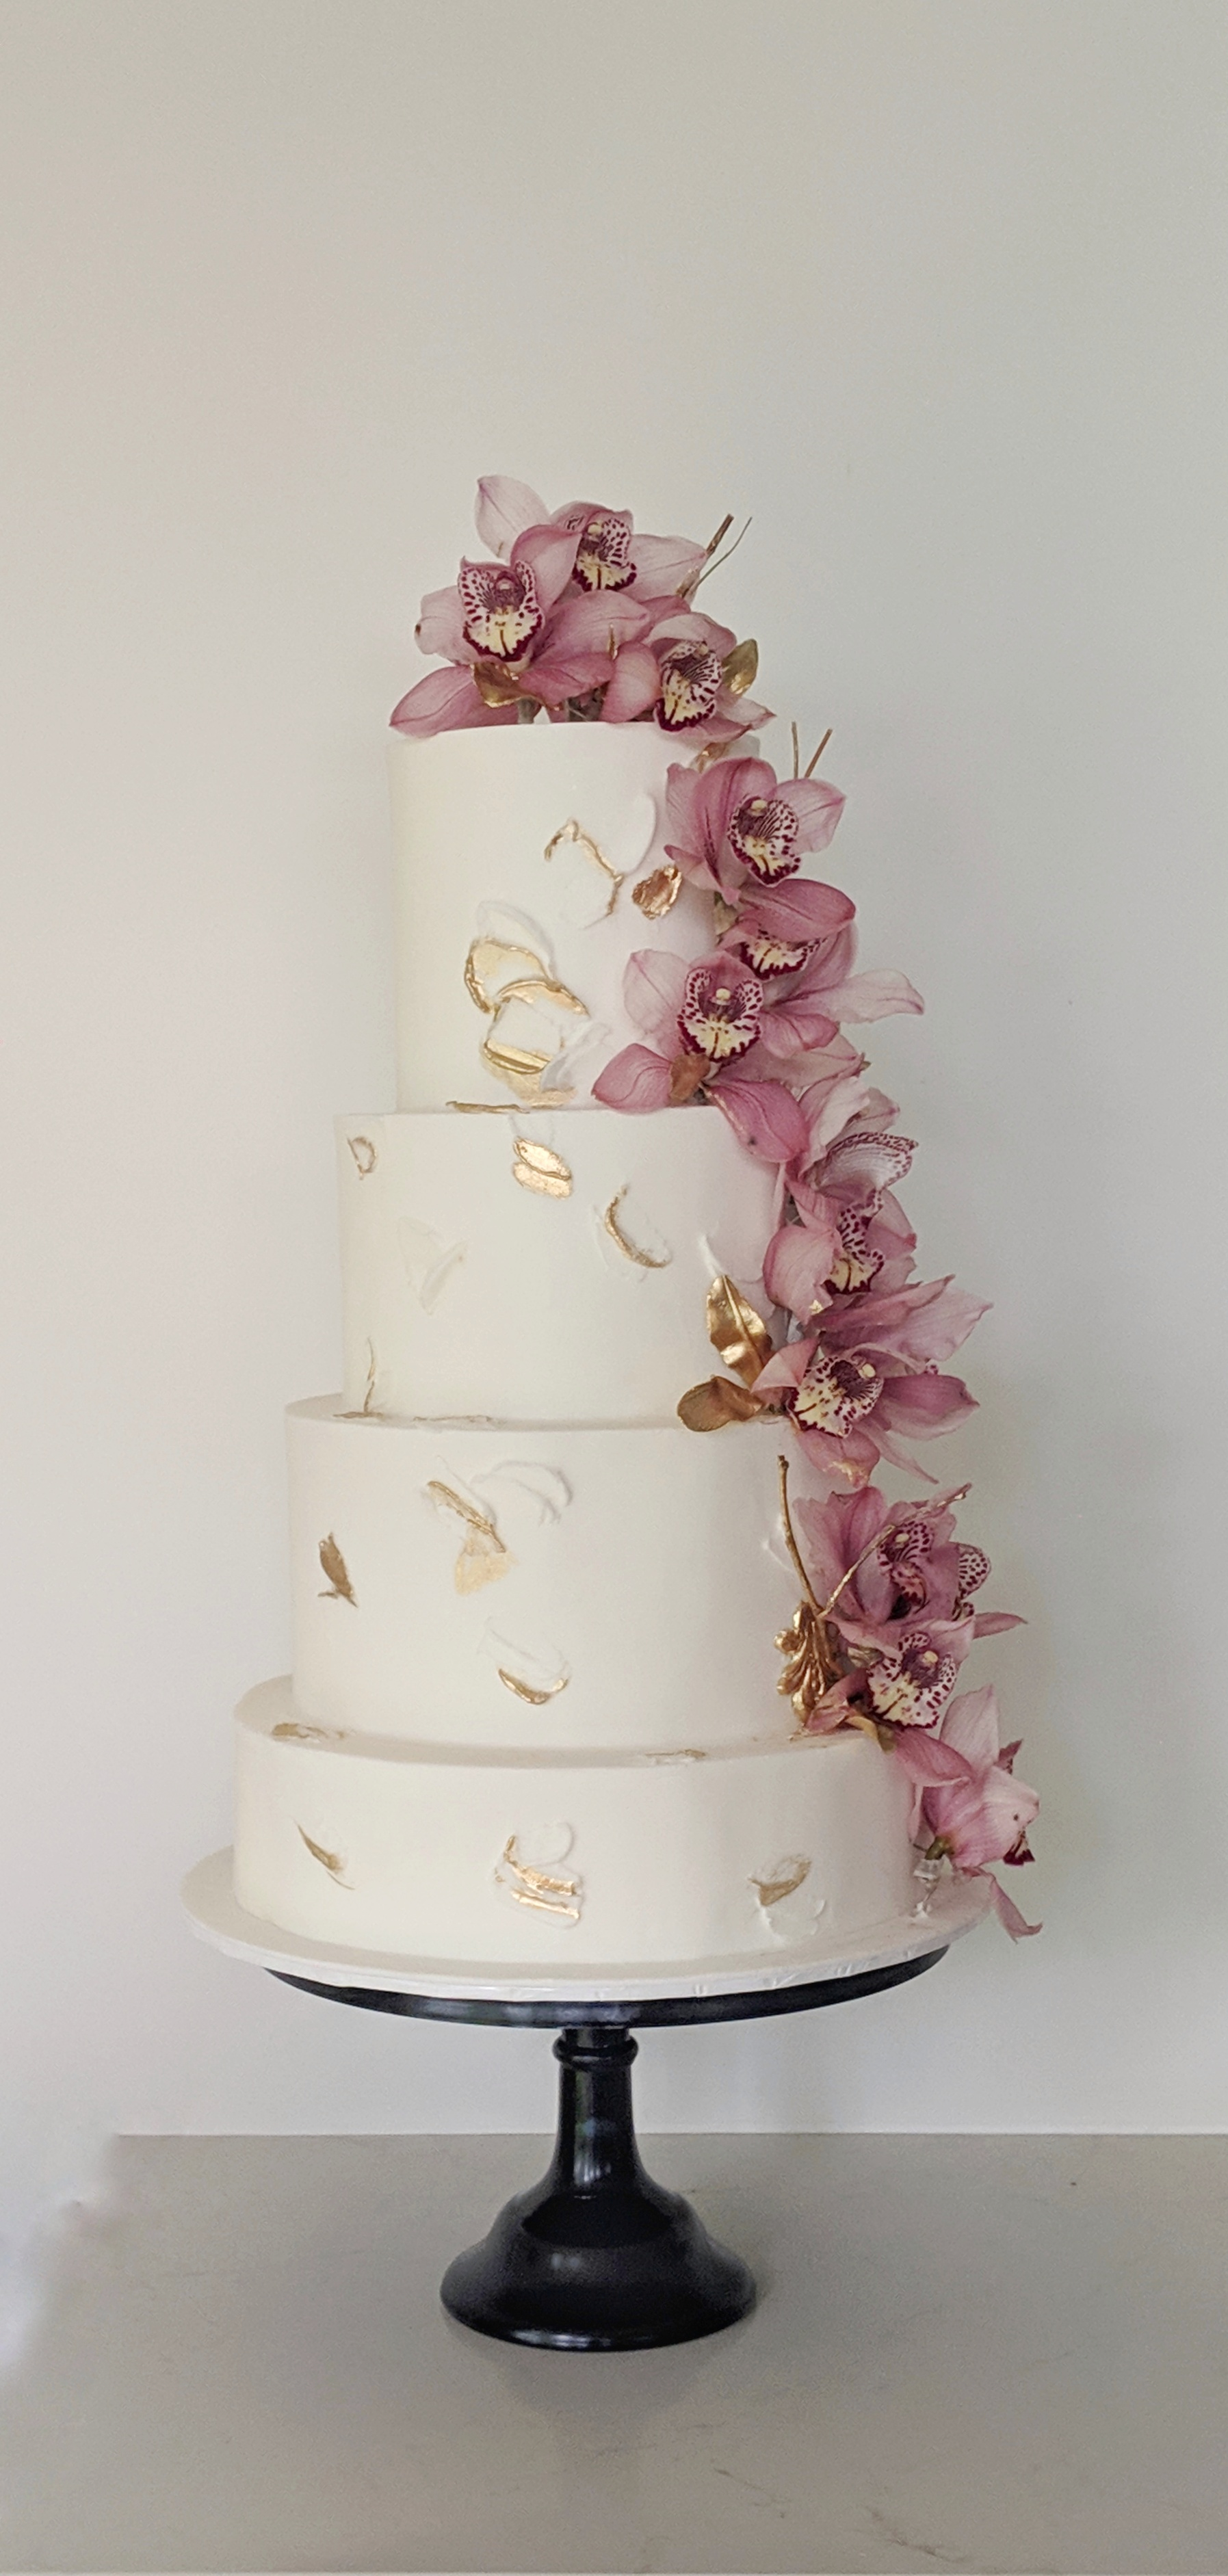 4 tier white fondant wedding cake with fresh flowers